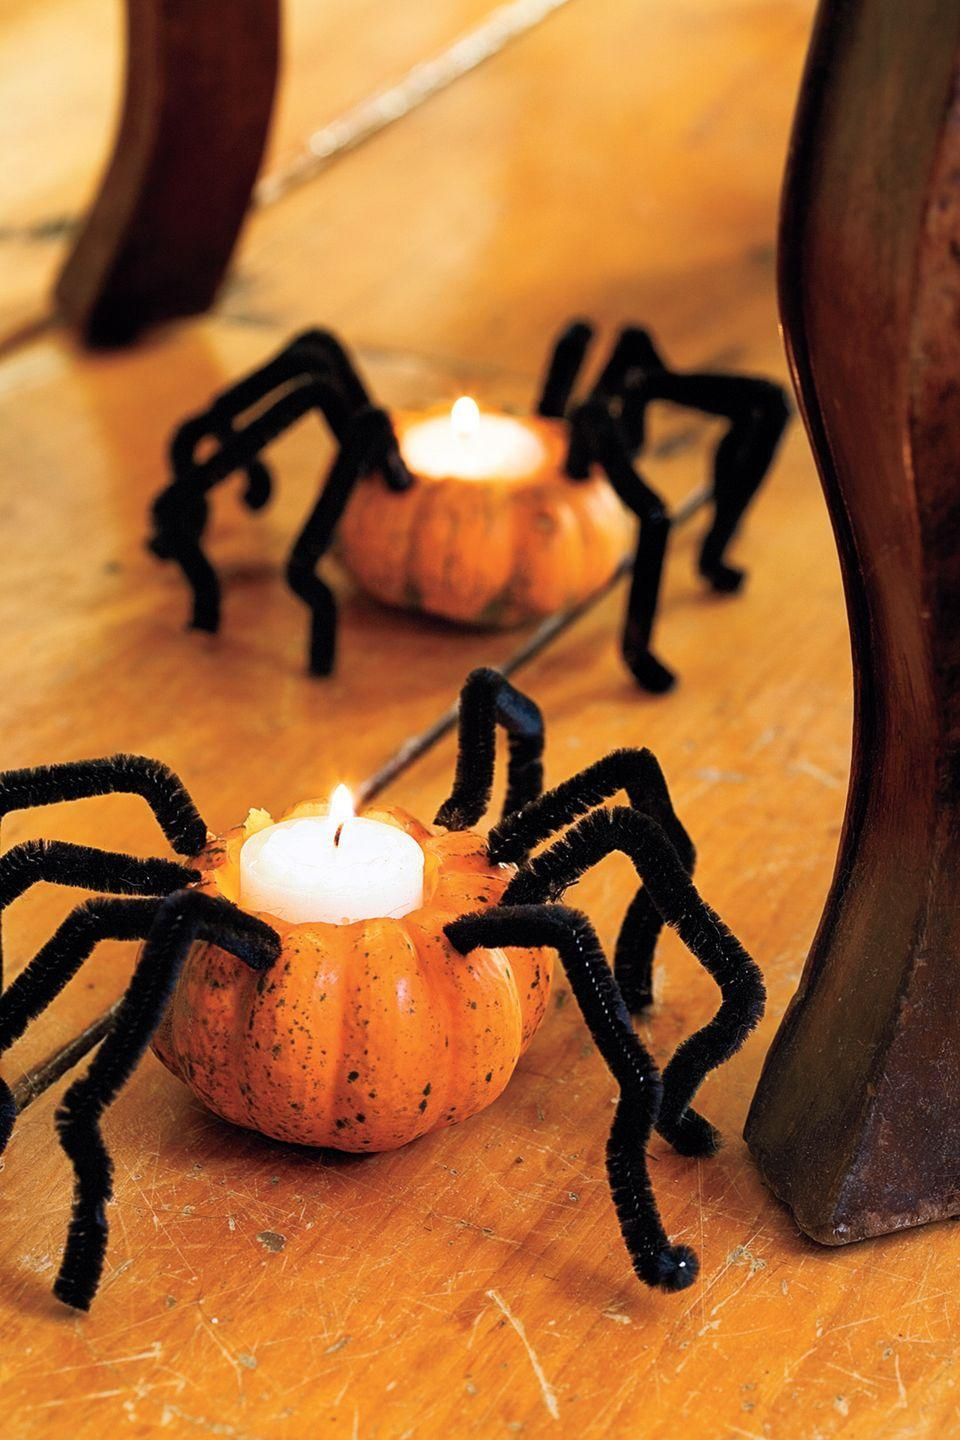 """<p>Light up the party with a spooky trail of spiders. Bent pipe cleaners bring to mind hairy tarantula legs when attached to mini pumpkins.  </p><p><a class=""""link rapid-noclick-resp"""" href=""""https://www.amazon.com/Zion-Judaica-Quality-Tealight-Unscented/dp/B00DUF1ANI/?tag=syn-yahoo-20&ascsubtag=%5Bartid%7C10055.g.238%5Bsrc%7Cyahoo-us"""" rel=""""nofollow noopener"""" target=""""_blank"""" data-ylk=""""slk:SHOP TEALIGHTS"""">SHOP TEALIGHTS</a></p>"""